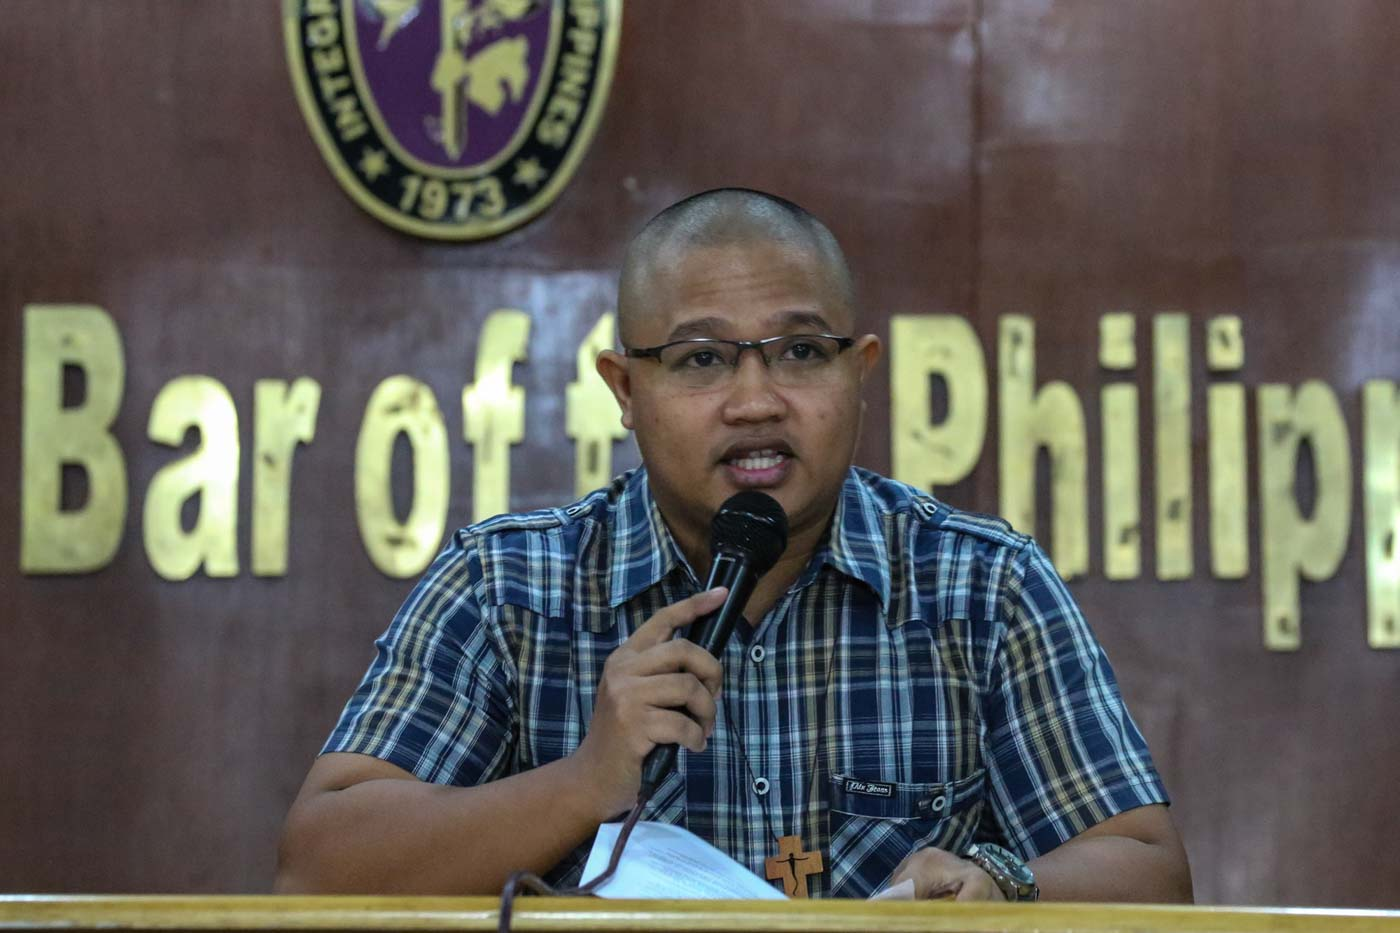 BIKOY. Peter Joemel Advincula goes public after his videos against key members of the Duterte circle went viral. Photo by Jire Carreon/Rappler